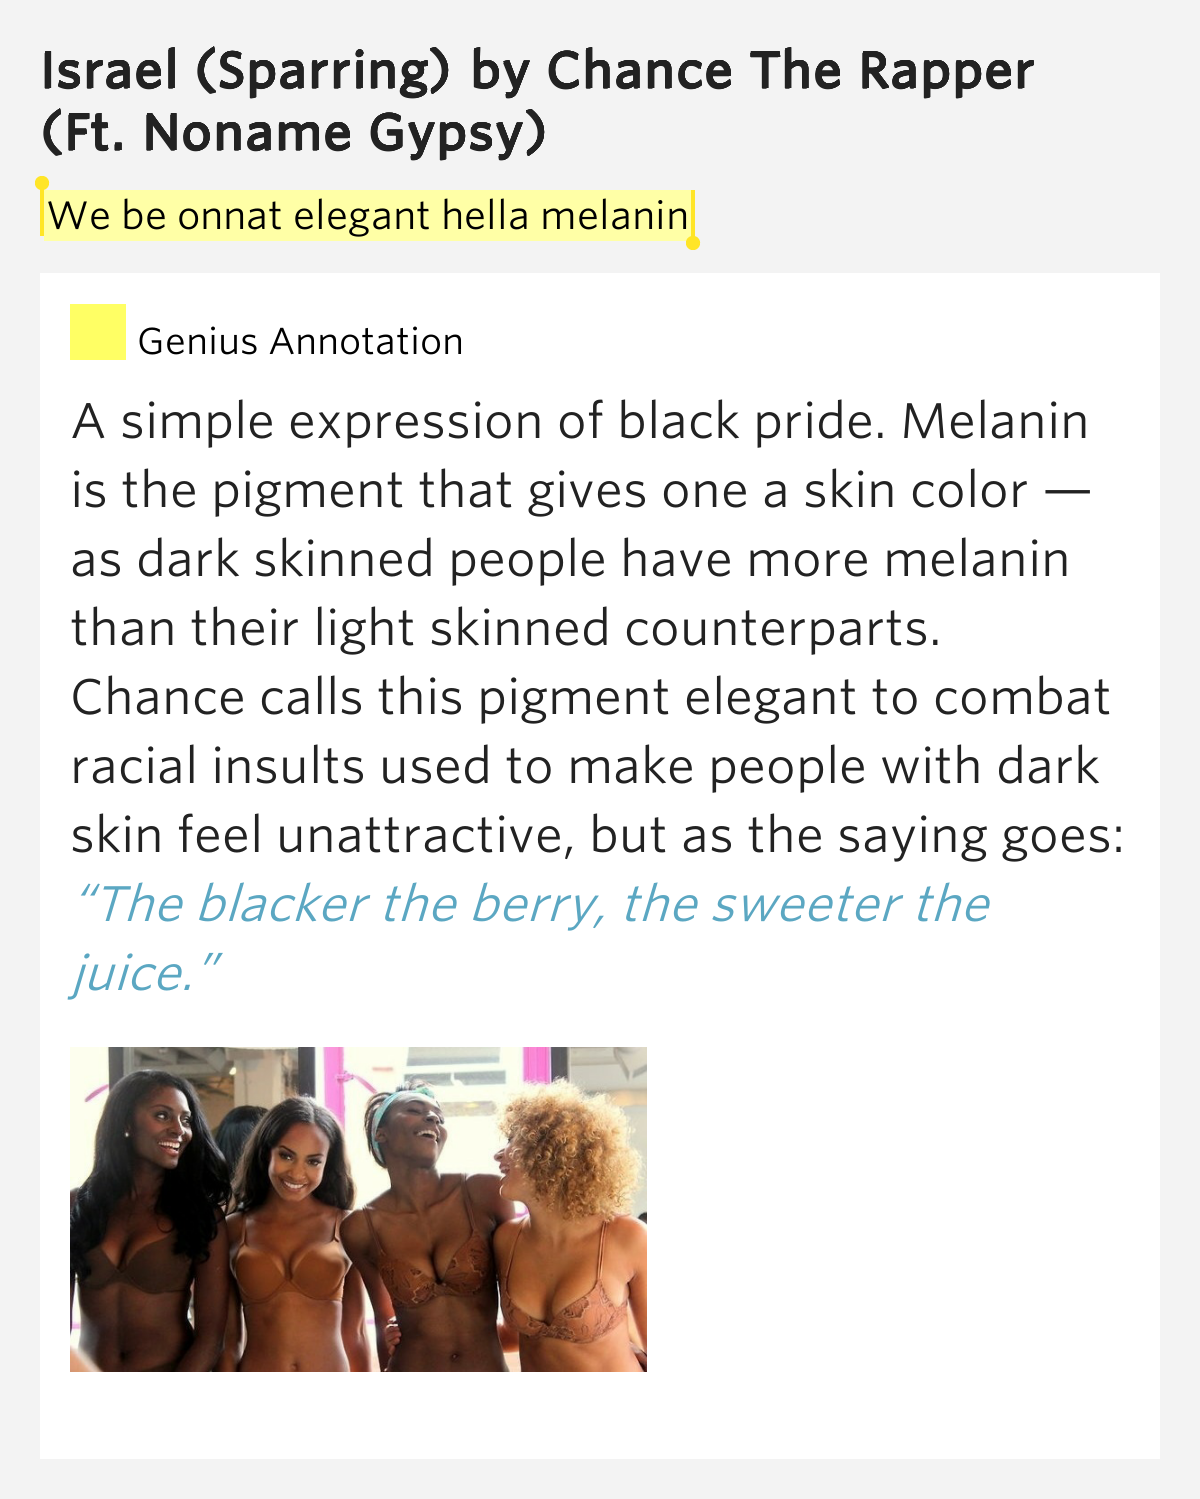 We Be Onnat Elegant Hella Melanin Israel Sparring Lyrics Meaning